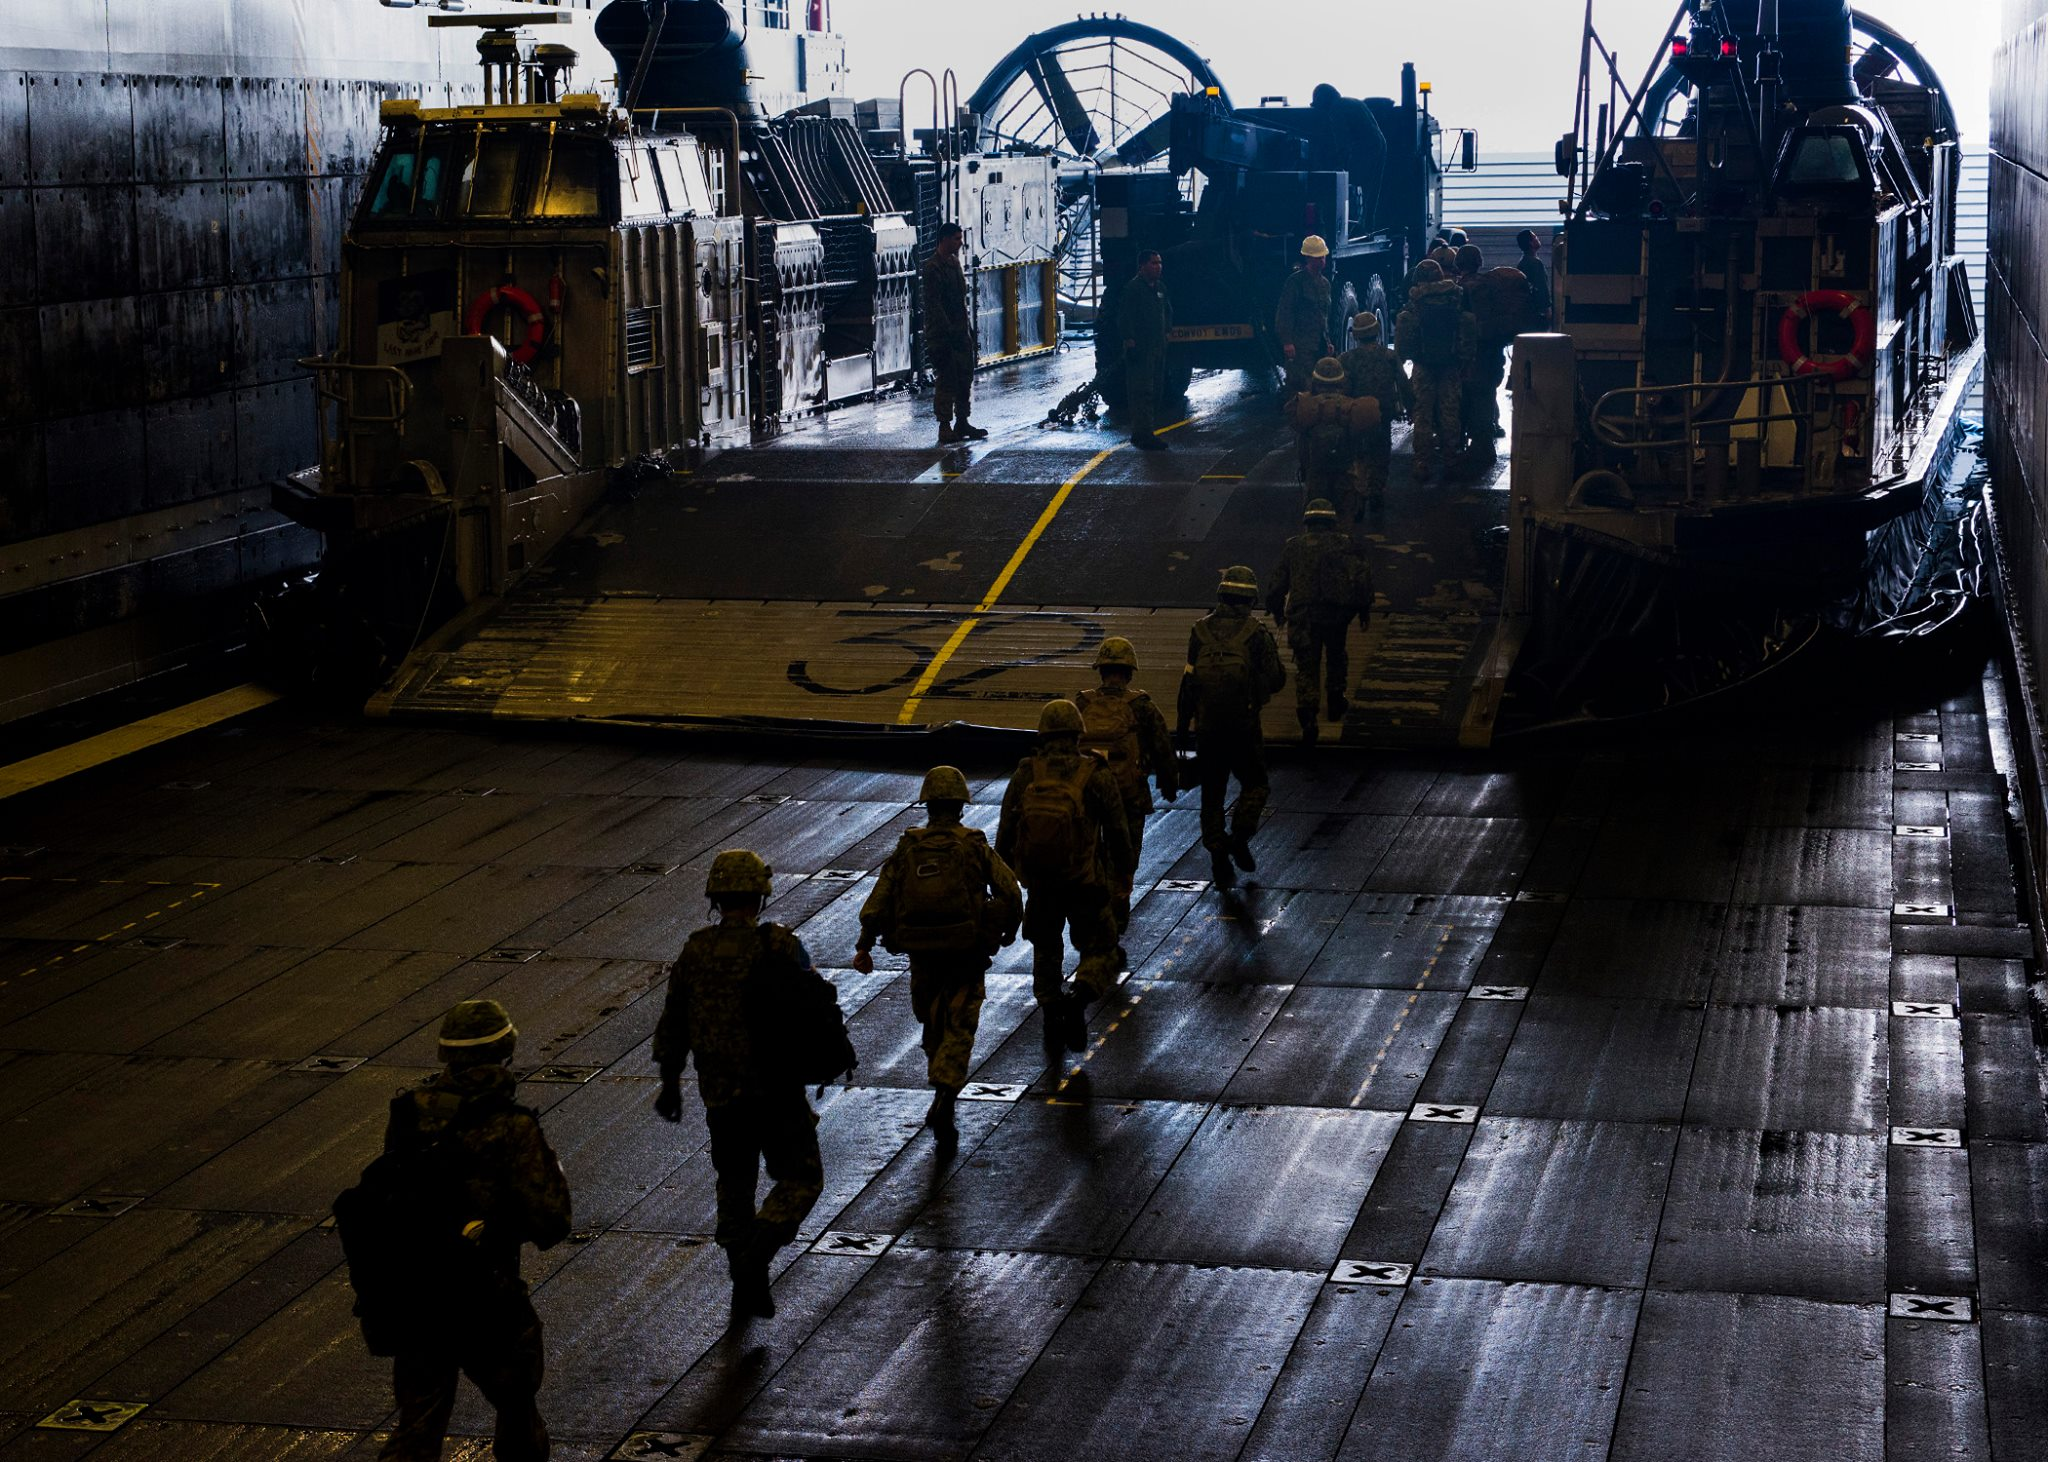 Japanese Self Defense Force soldiers board a Landing Craft Air Cushion (LCAC) in the well deck of USS Somerset (LPD-25). US Marine Corps Photo